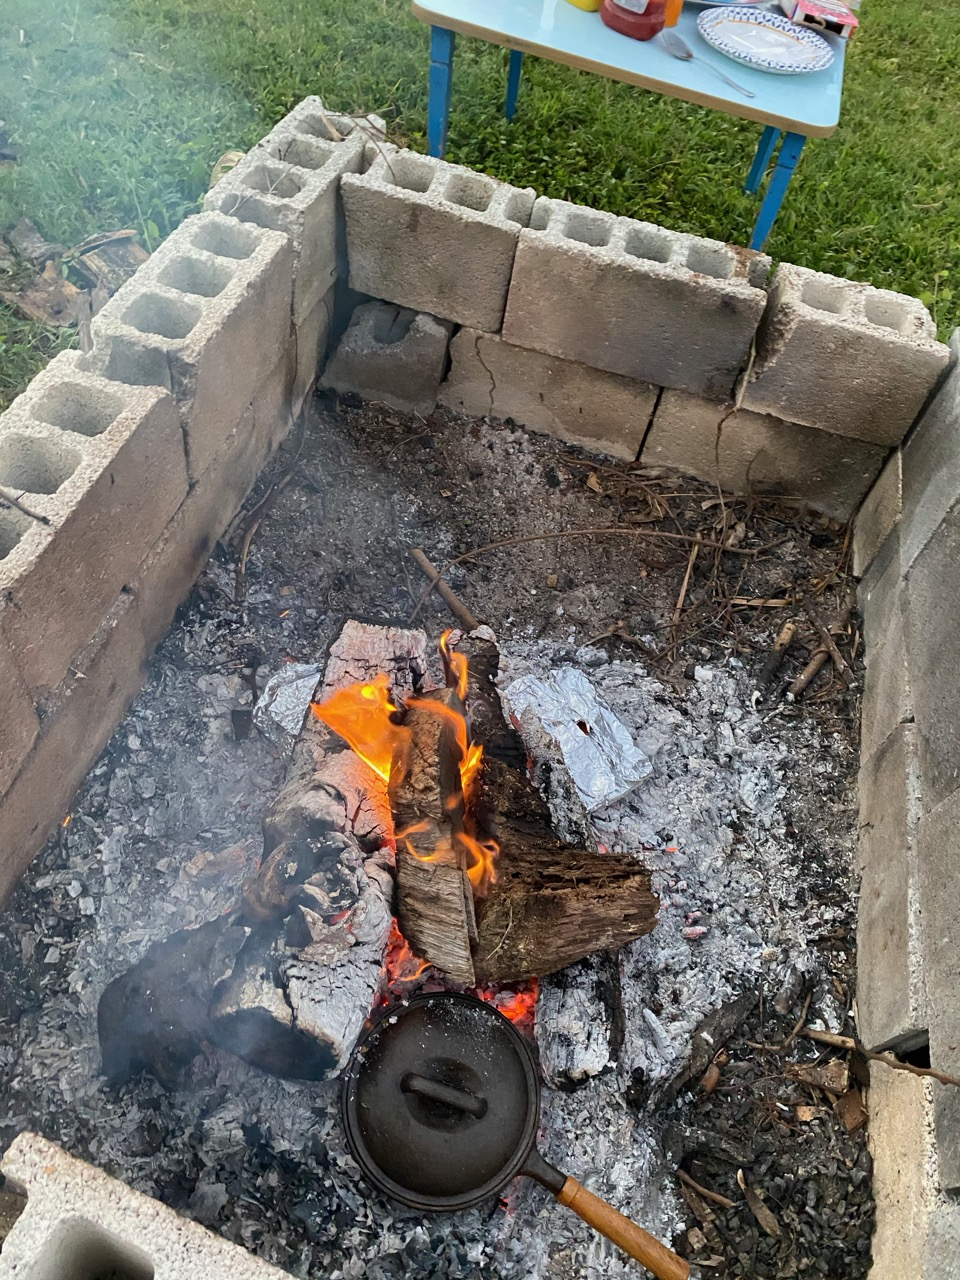 cast iron skillet - webelo - cubscout